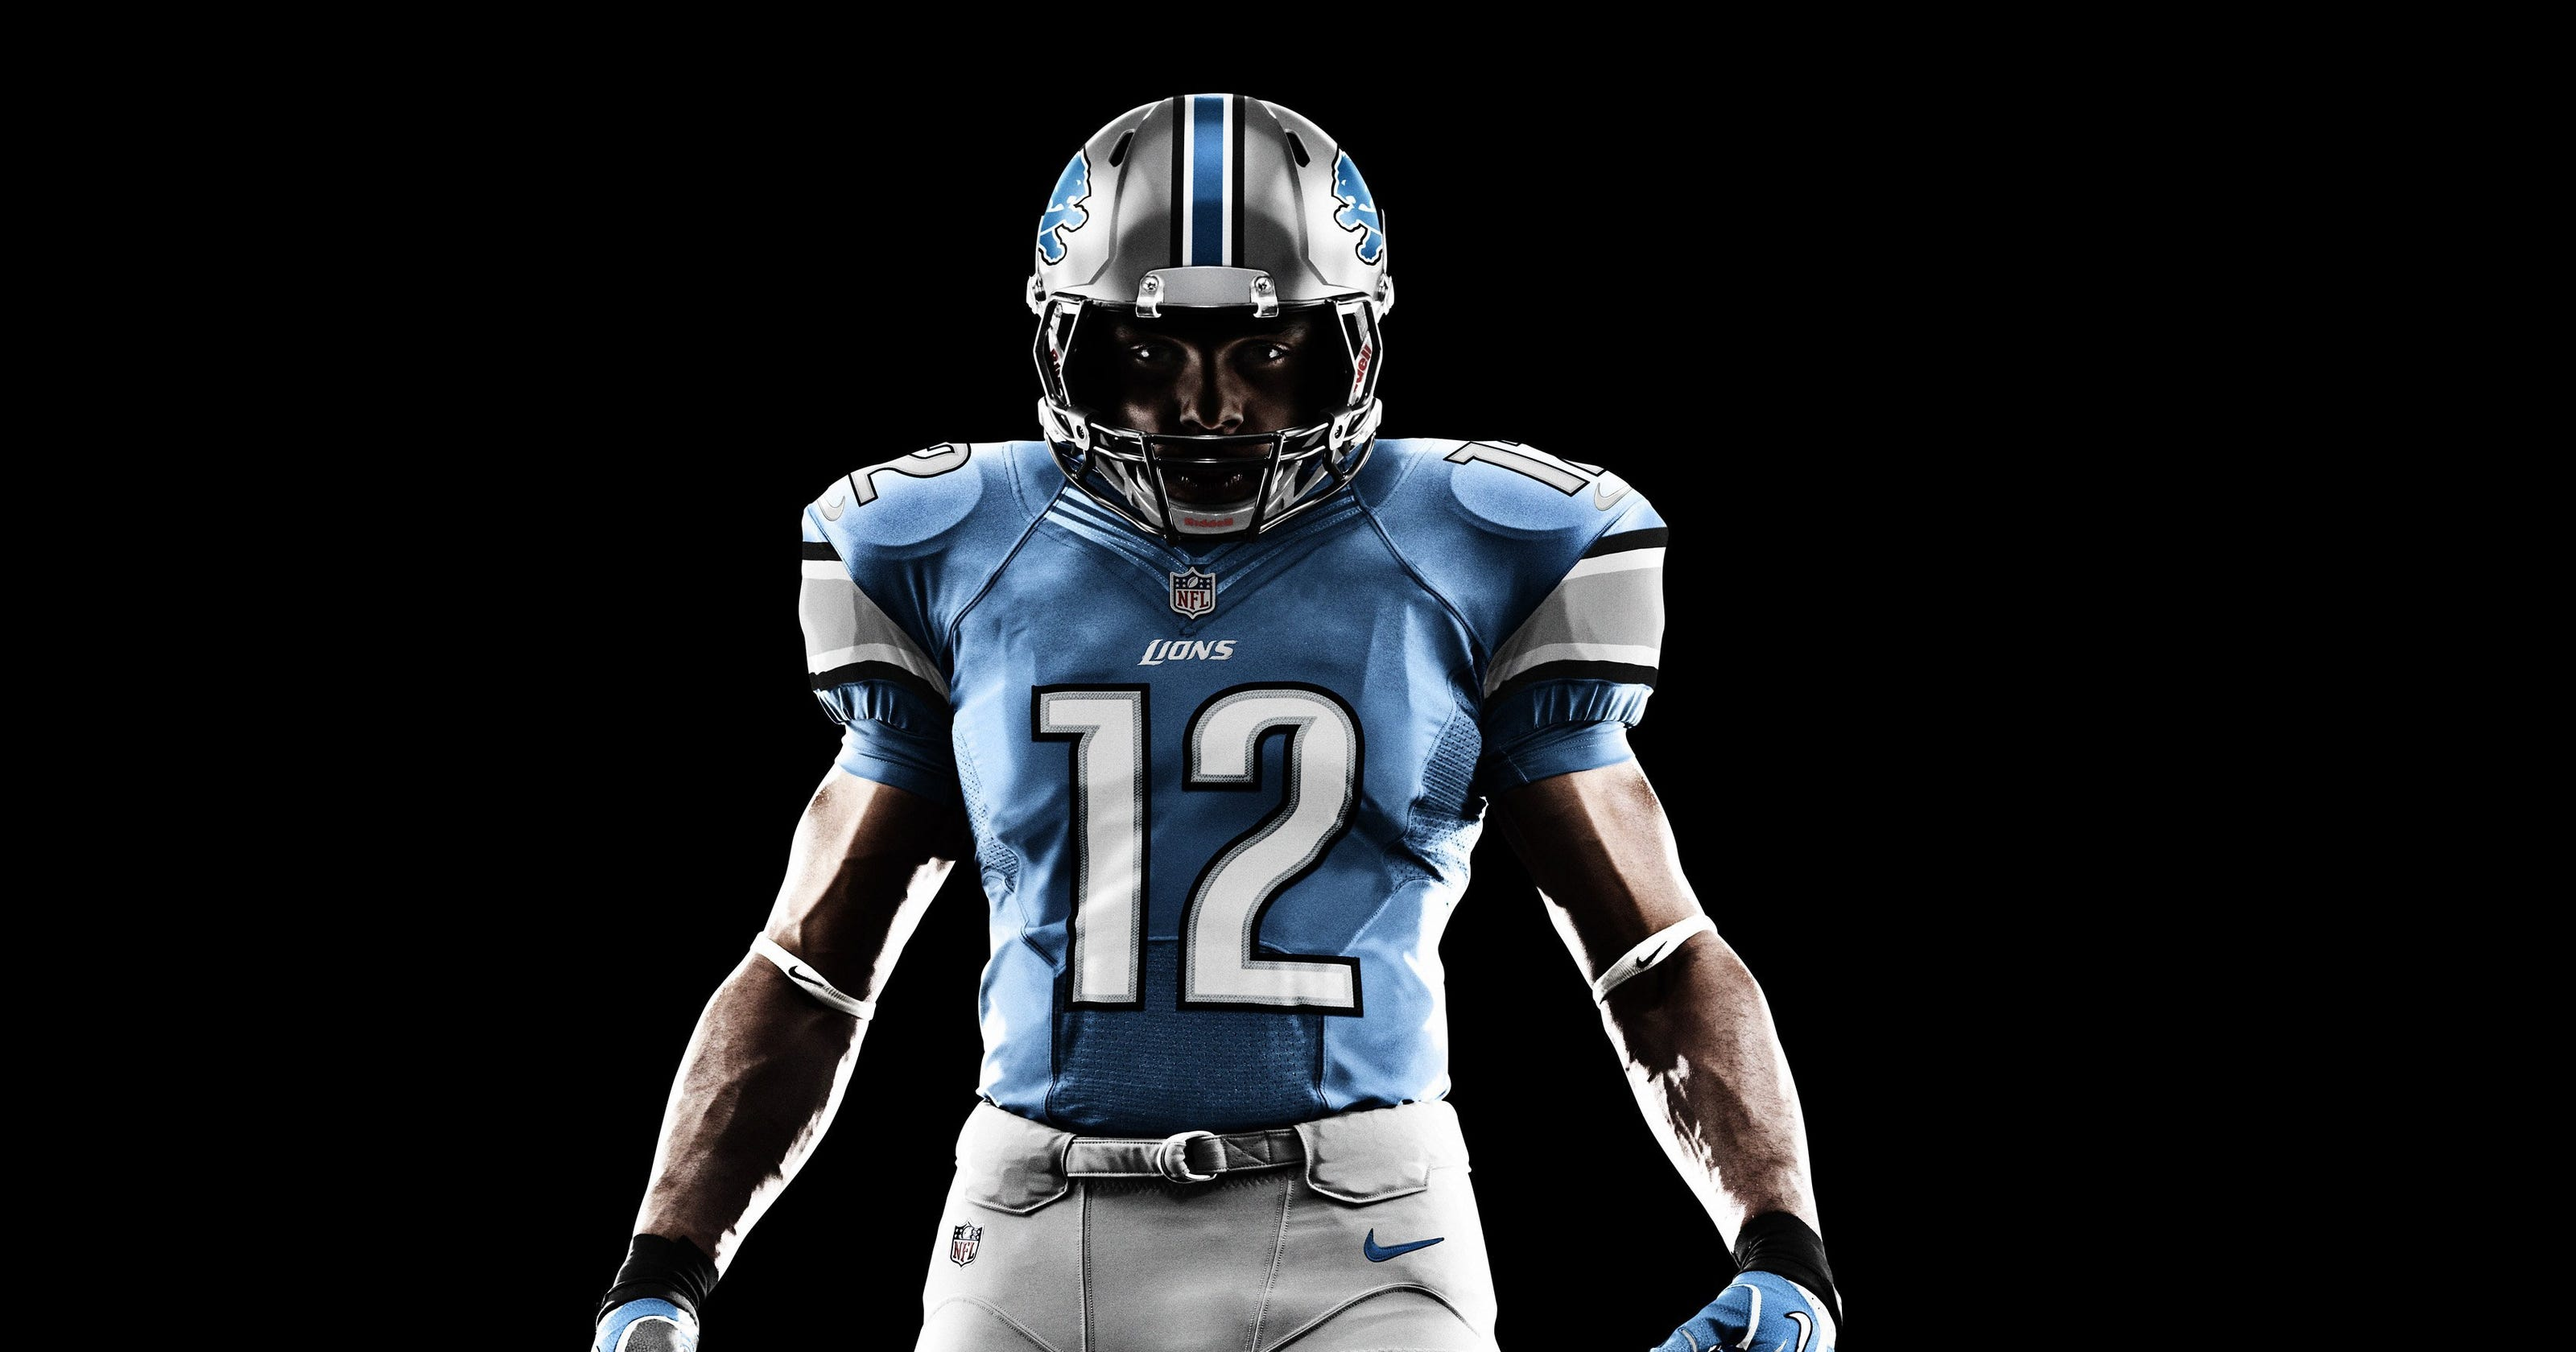 b51d31cc0 Detroit Lions looking at updating uniforms in 2017